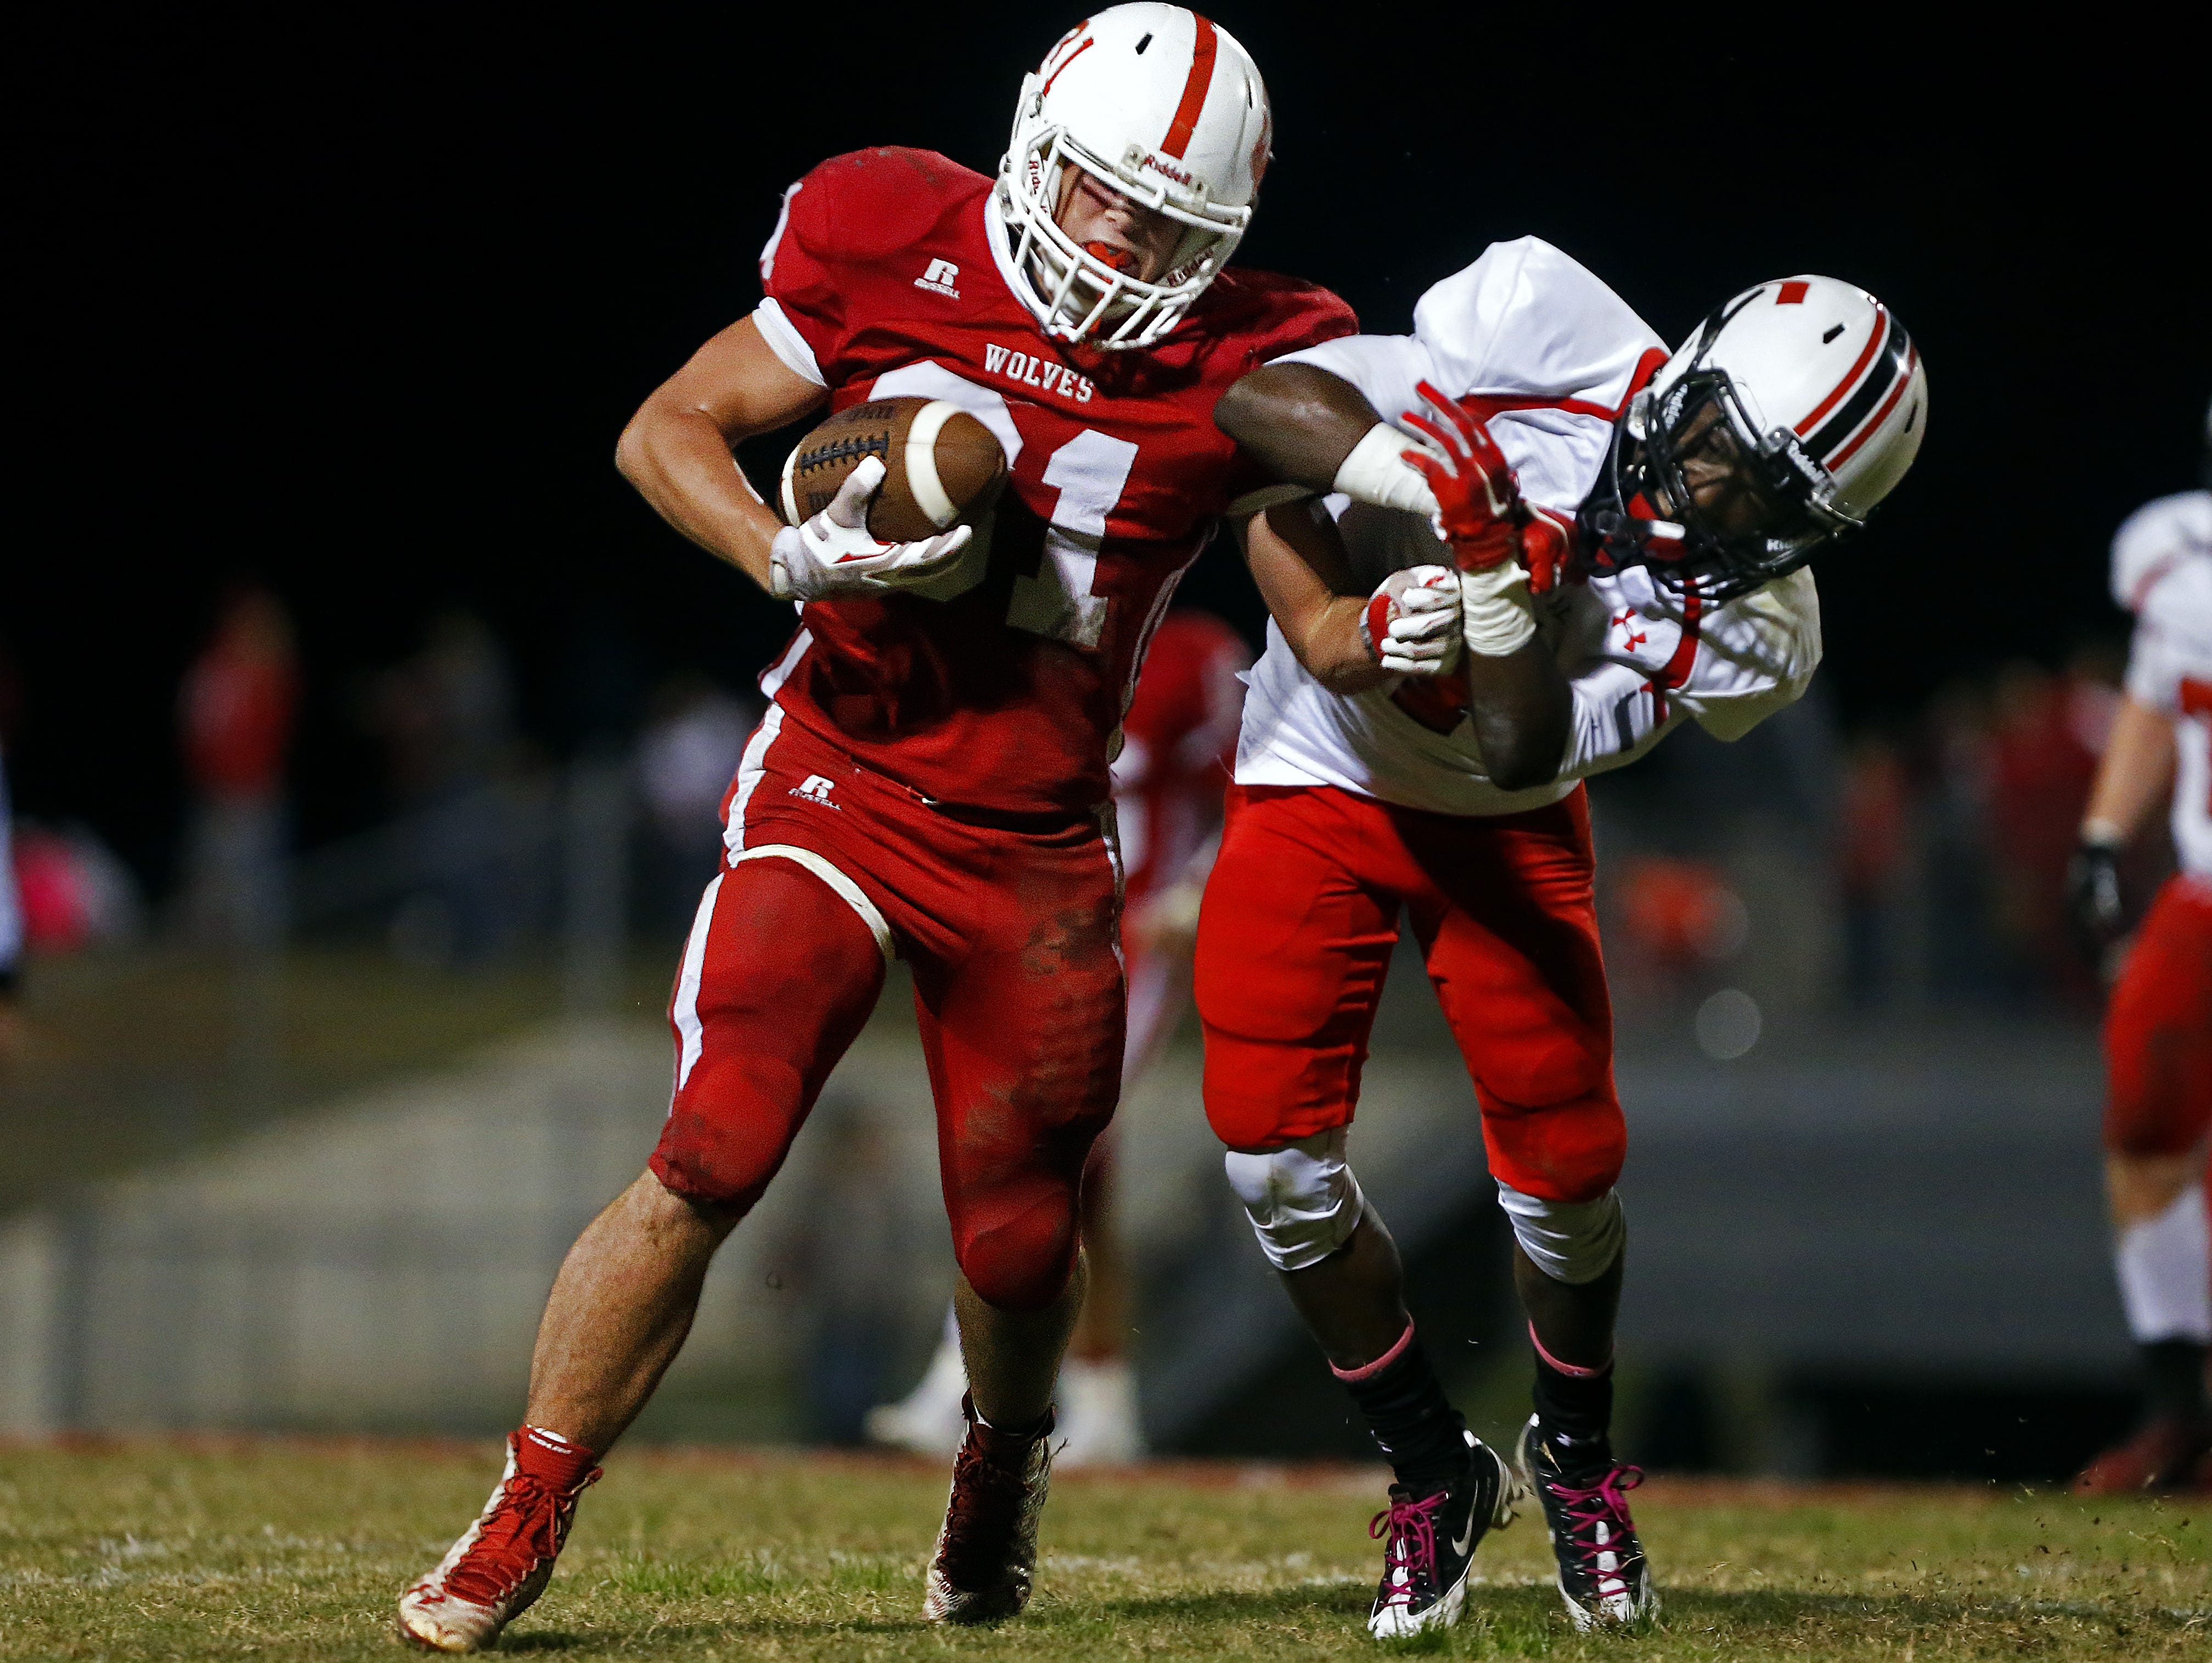 Reeds Spring High School fullback Colton Pomeroy (31) bounces off of a hard hit by Central Bulldogs defensive back Damarcus Mason (4) on Friday. Reeds Spring won the game 35-24.